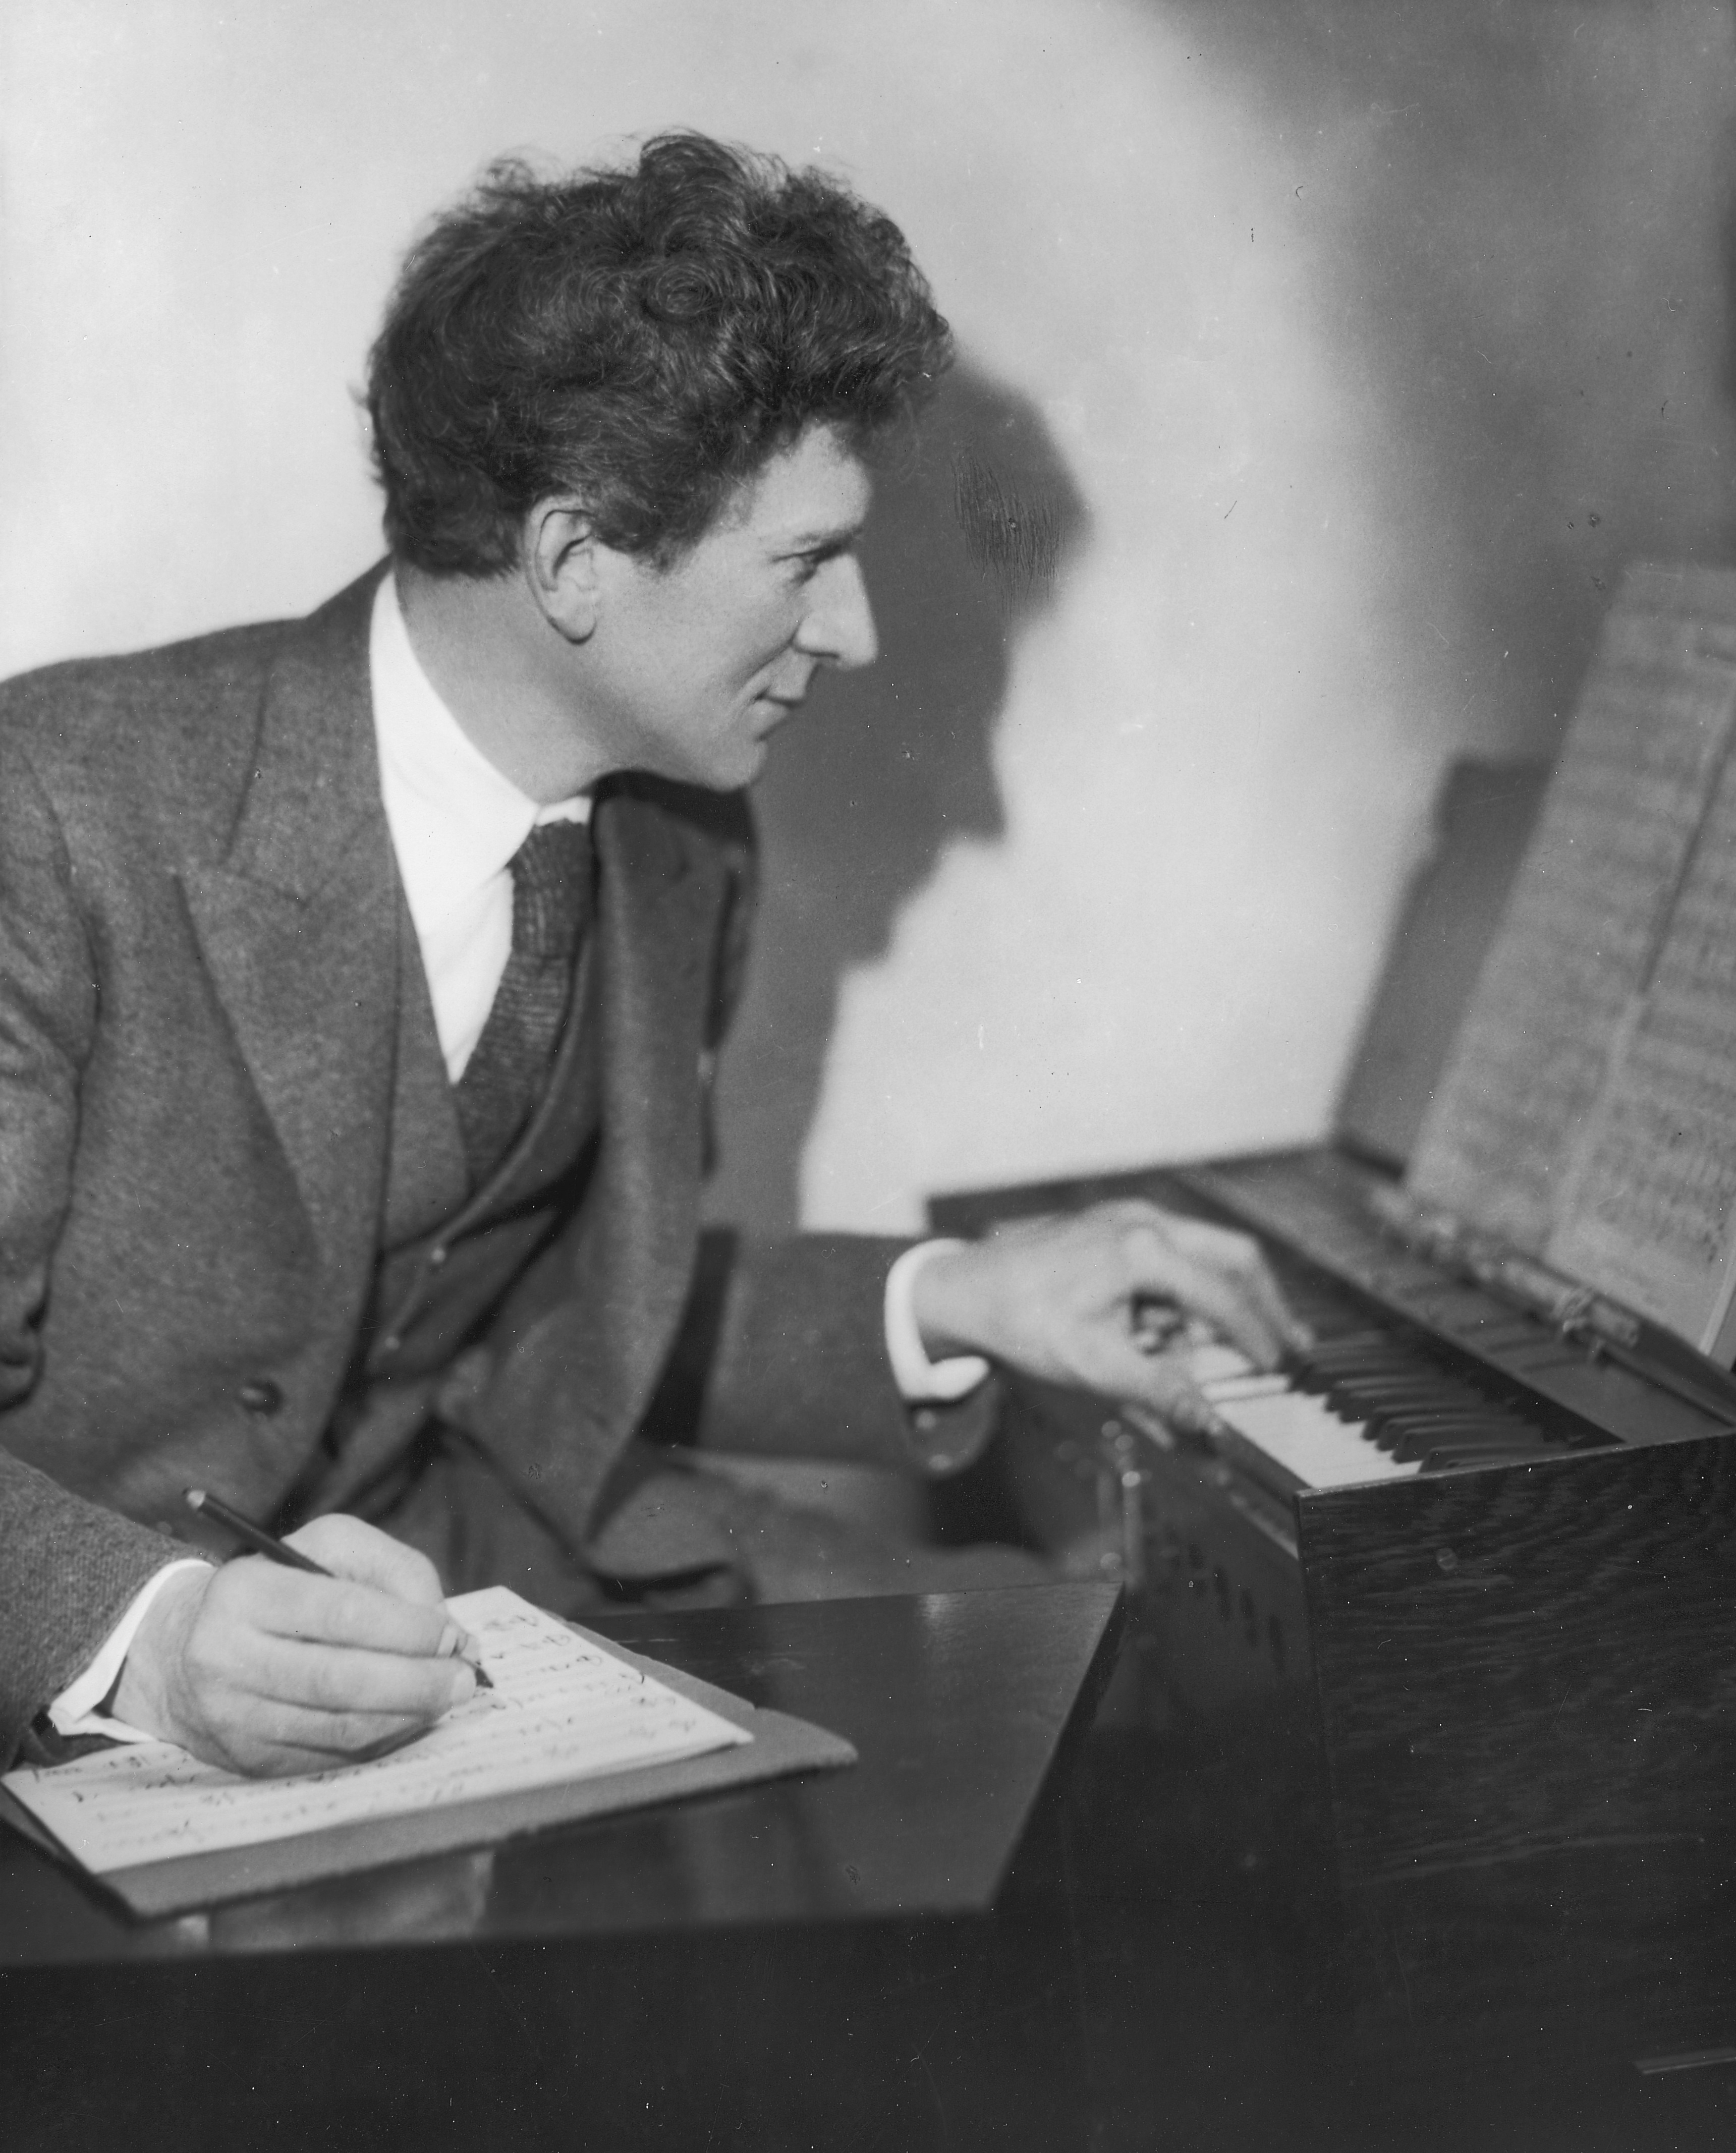 Percy Grainger practicing music in his home and studio